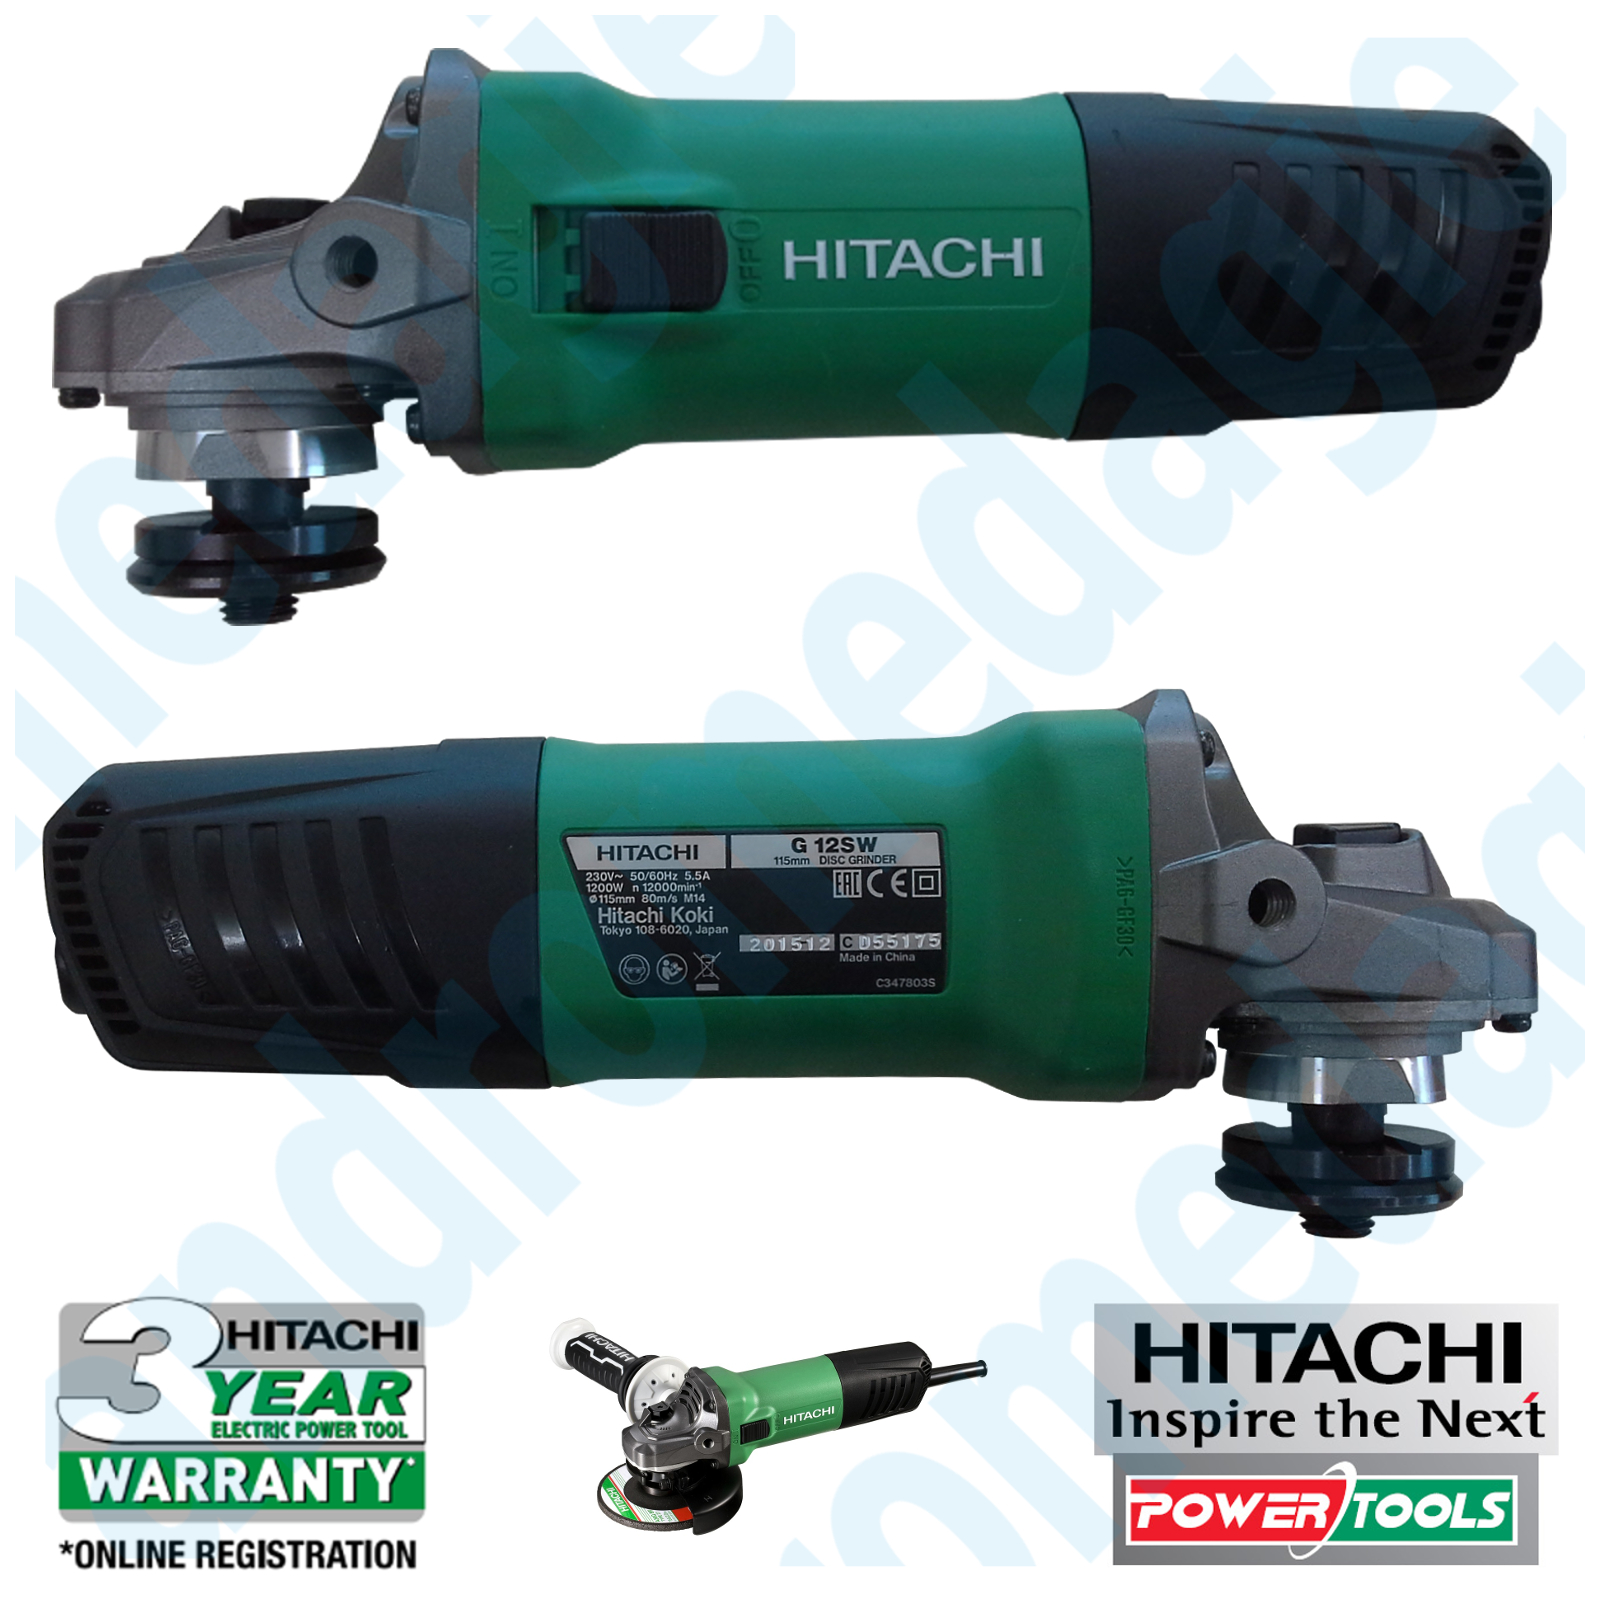 HITACHI G12SW+DISCO